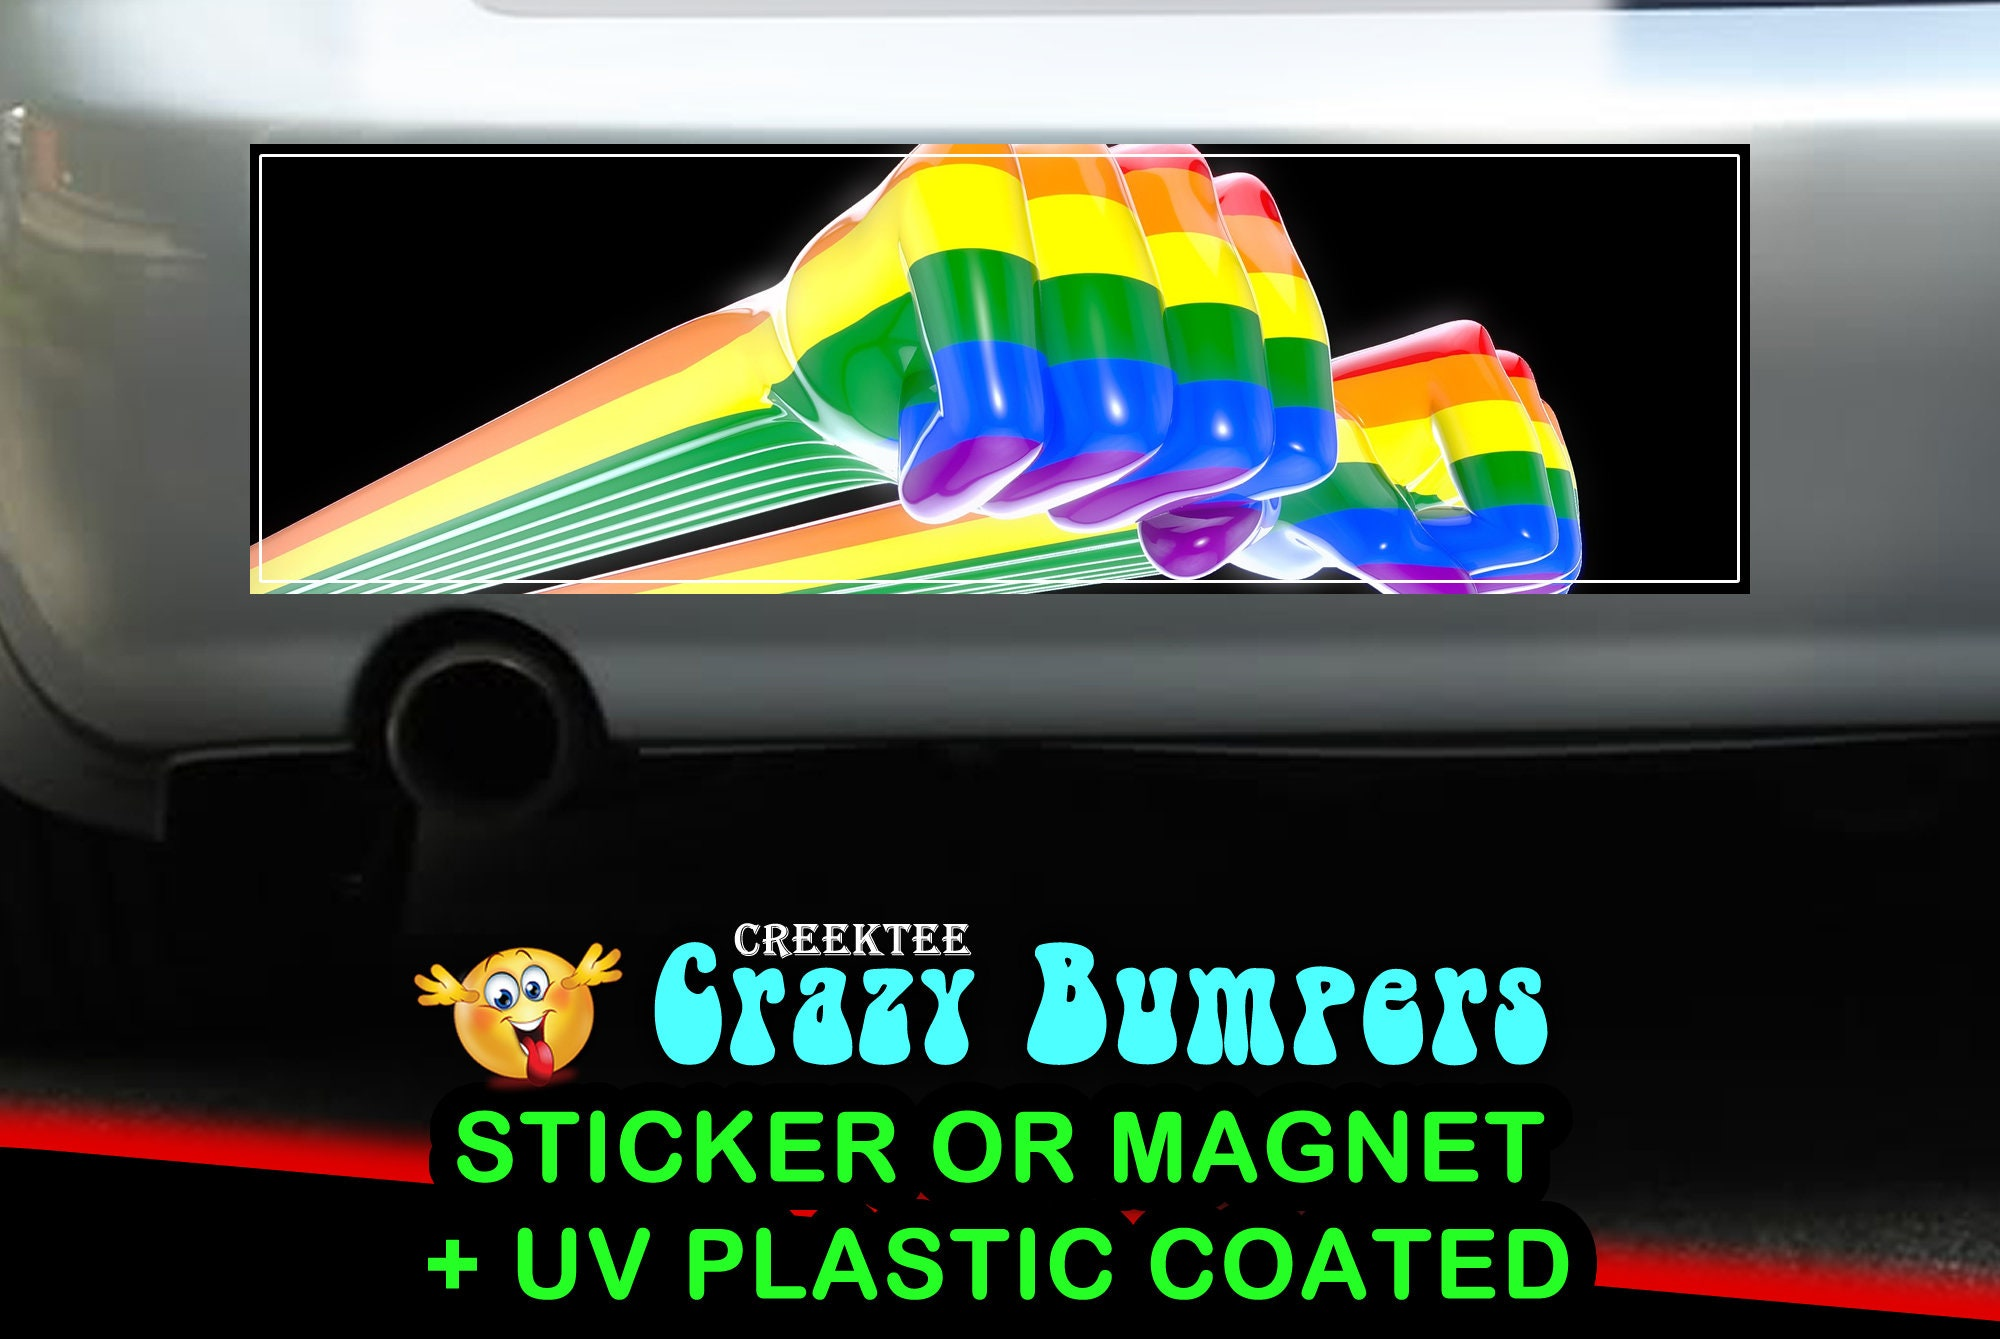 CAD$9.74 - LGBT 10 x 3 Bumper Sticker or Magnetic Bumper Sticker Available